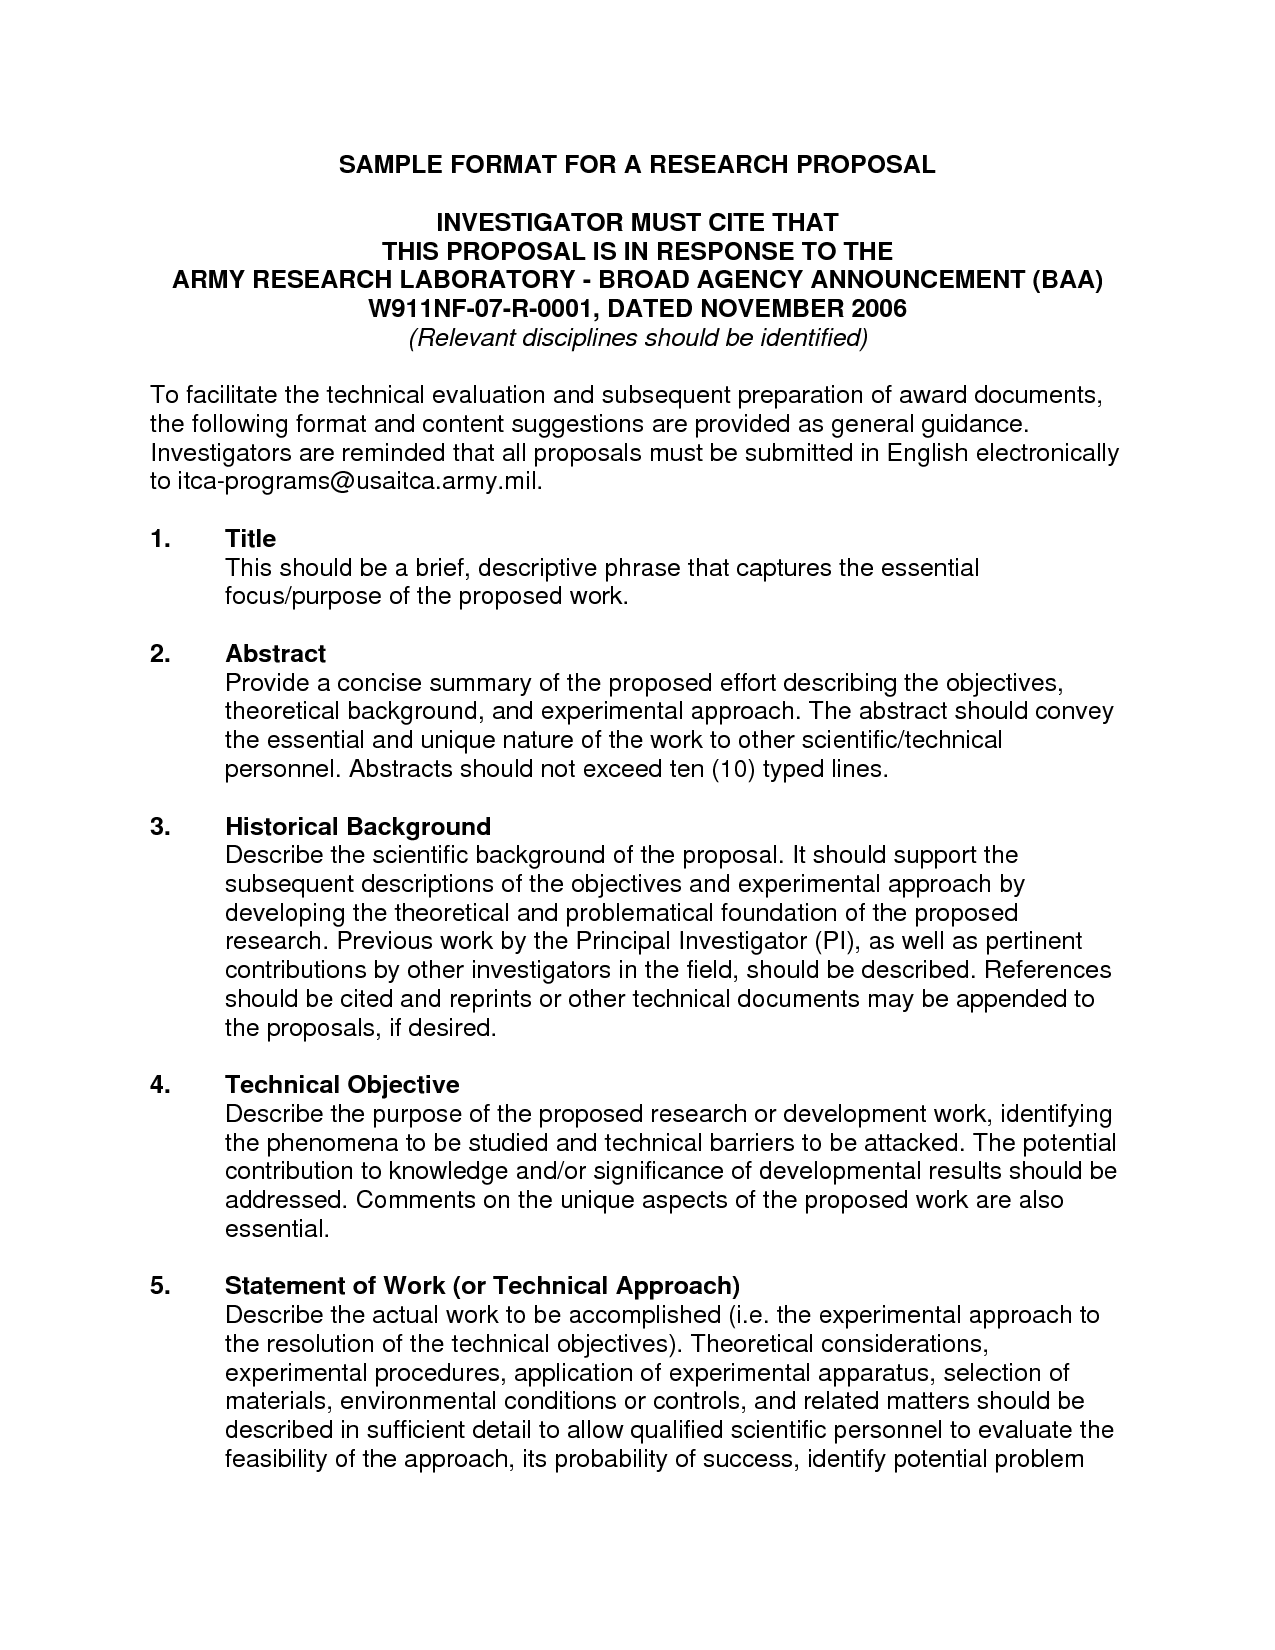 006 Good Topics For Argumentative Research Paper Frightening A Easy Papers Interesting Full